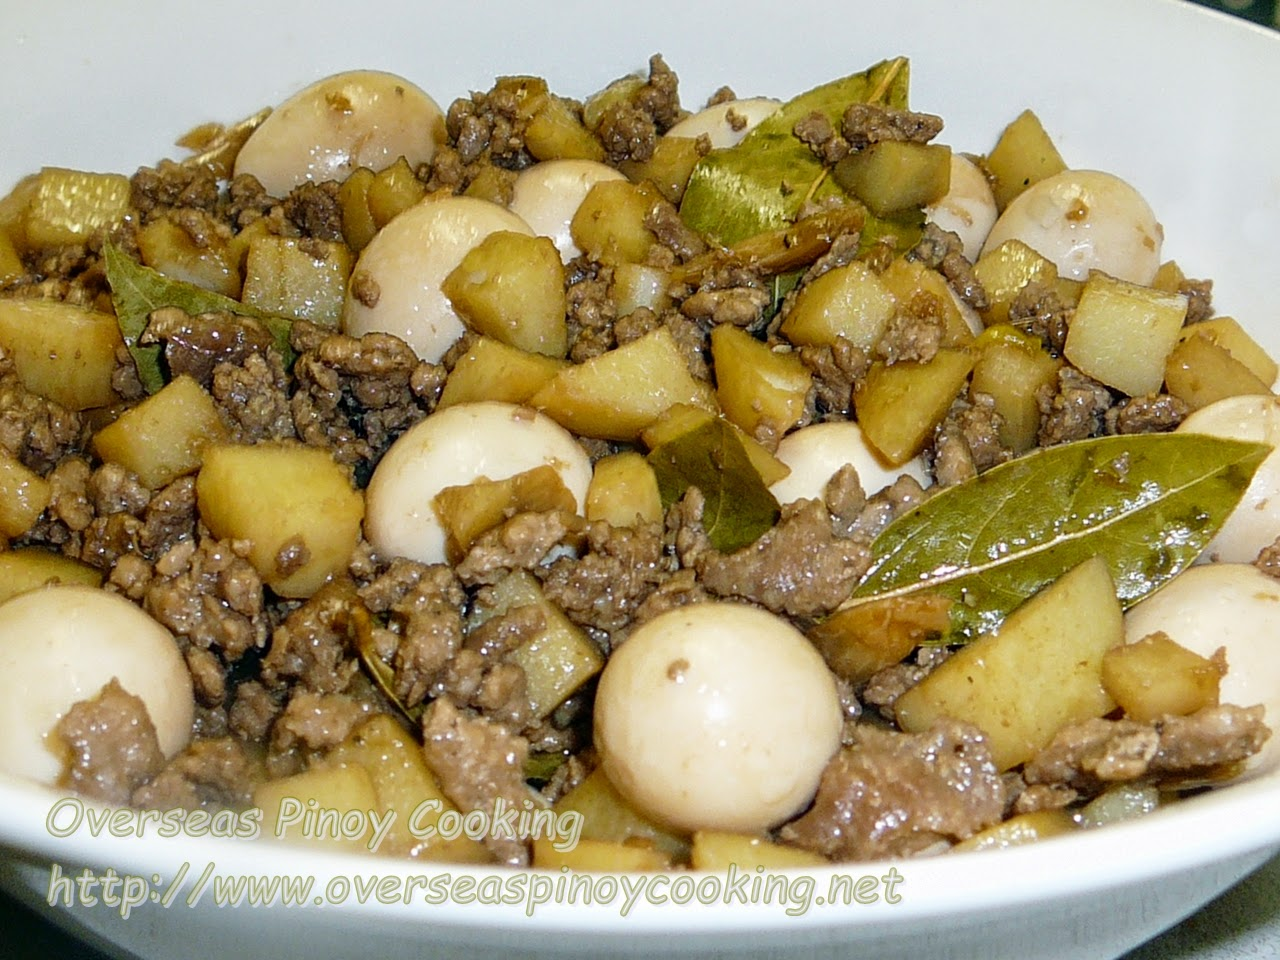 Ground Pork Adobo with Quail Eggs